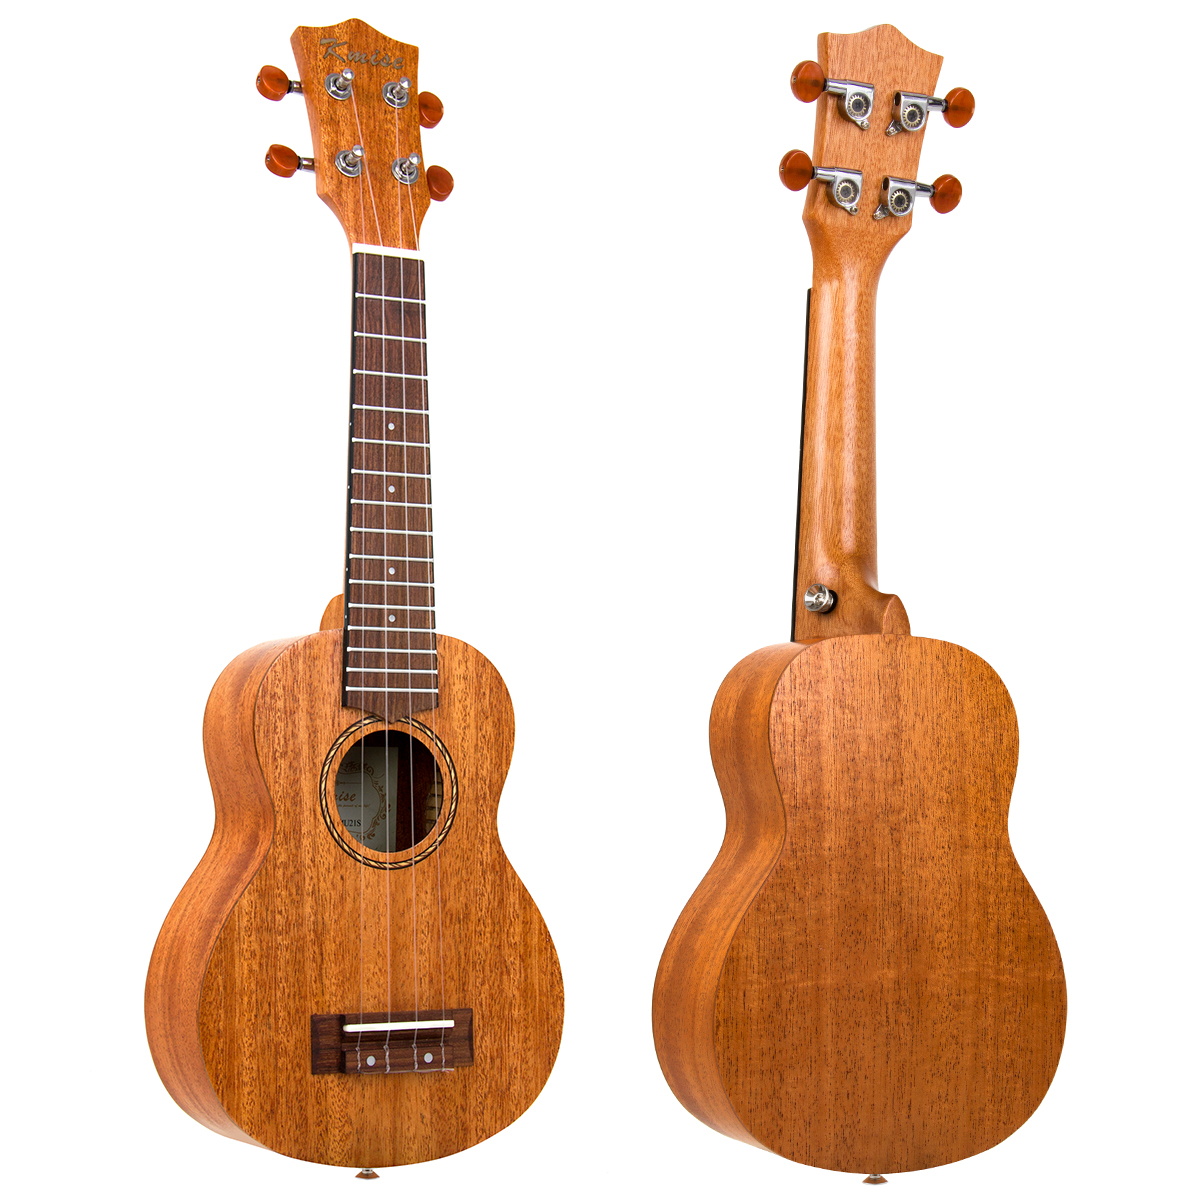 Kmise Ukulele Review The Uk21s Soprano Electric Ukulele